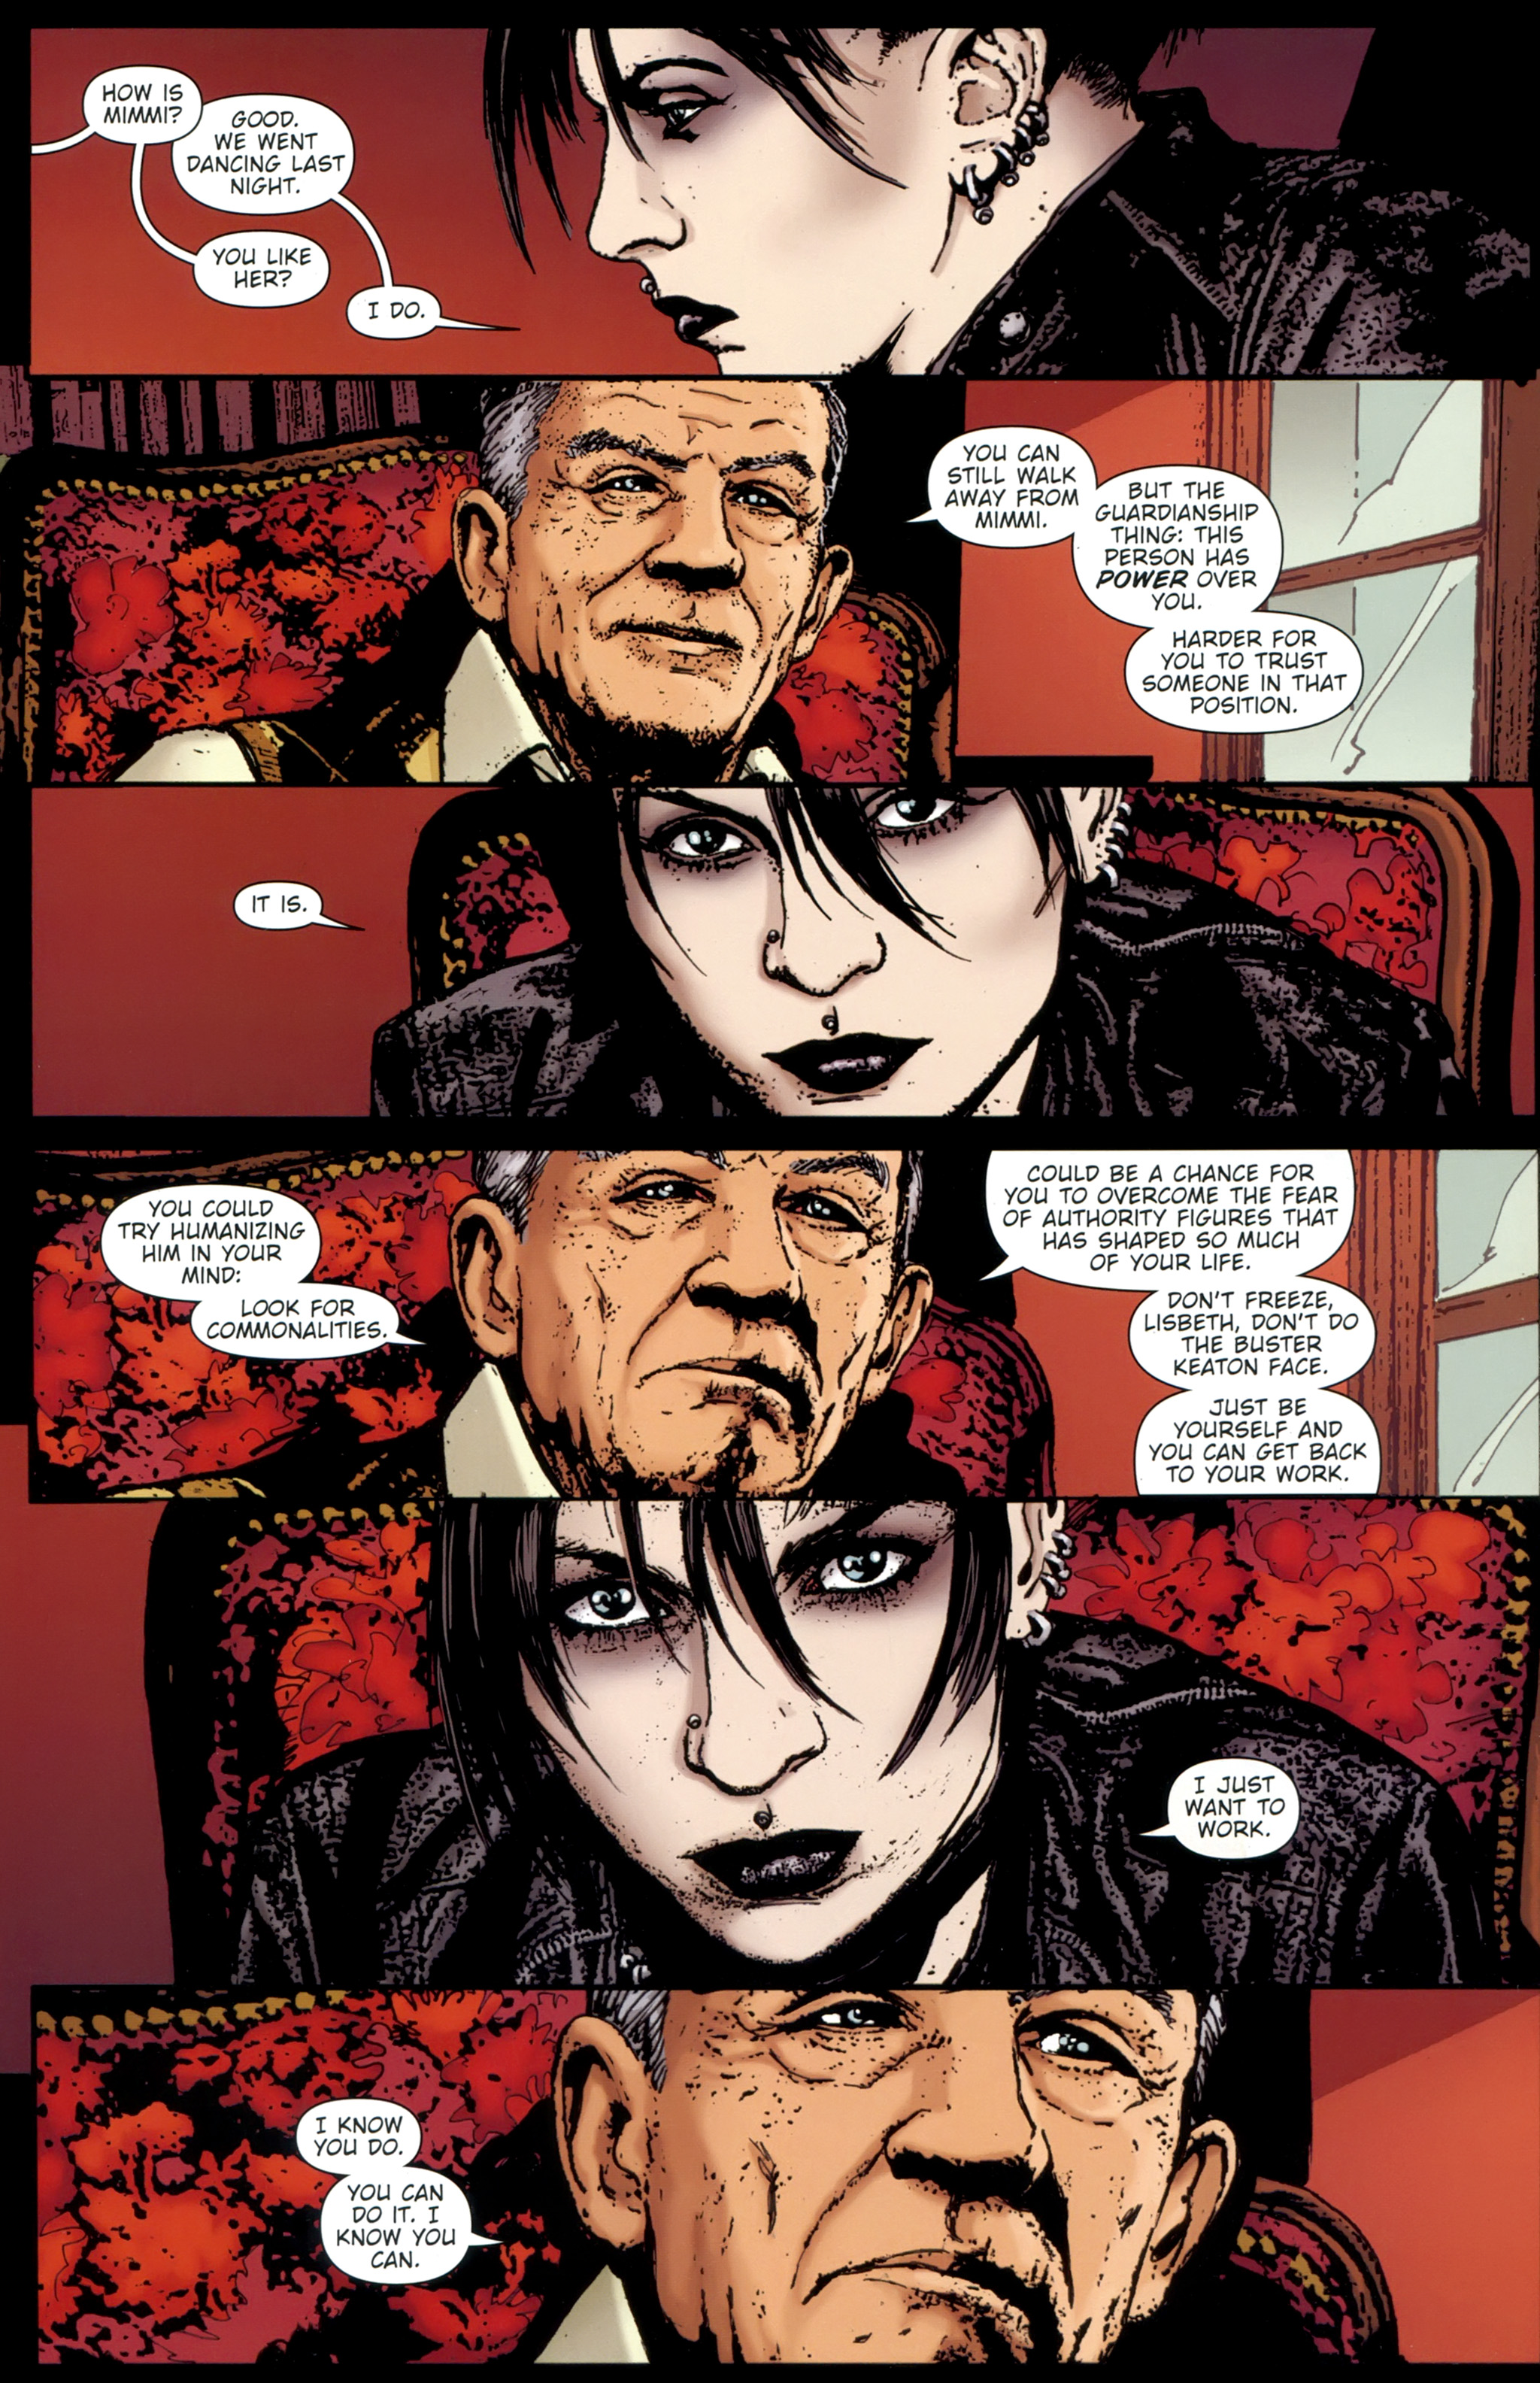 Read online The Girl With the Dragon Tattoo comic -  Issue # TPB 1 - 85